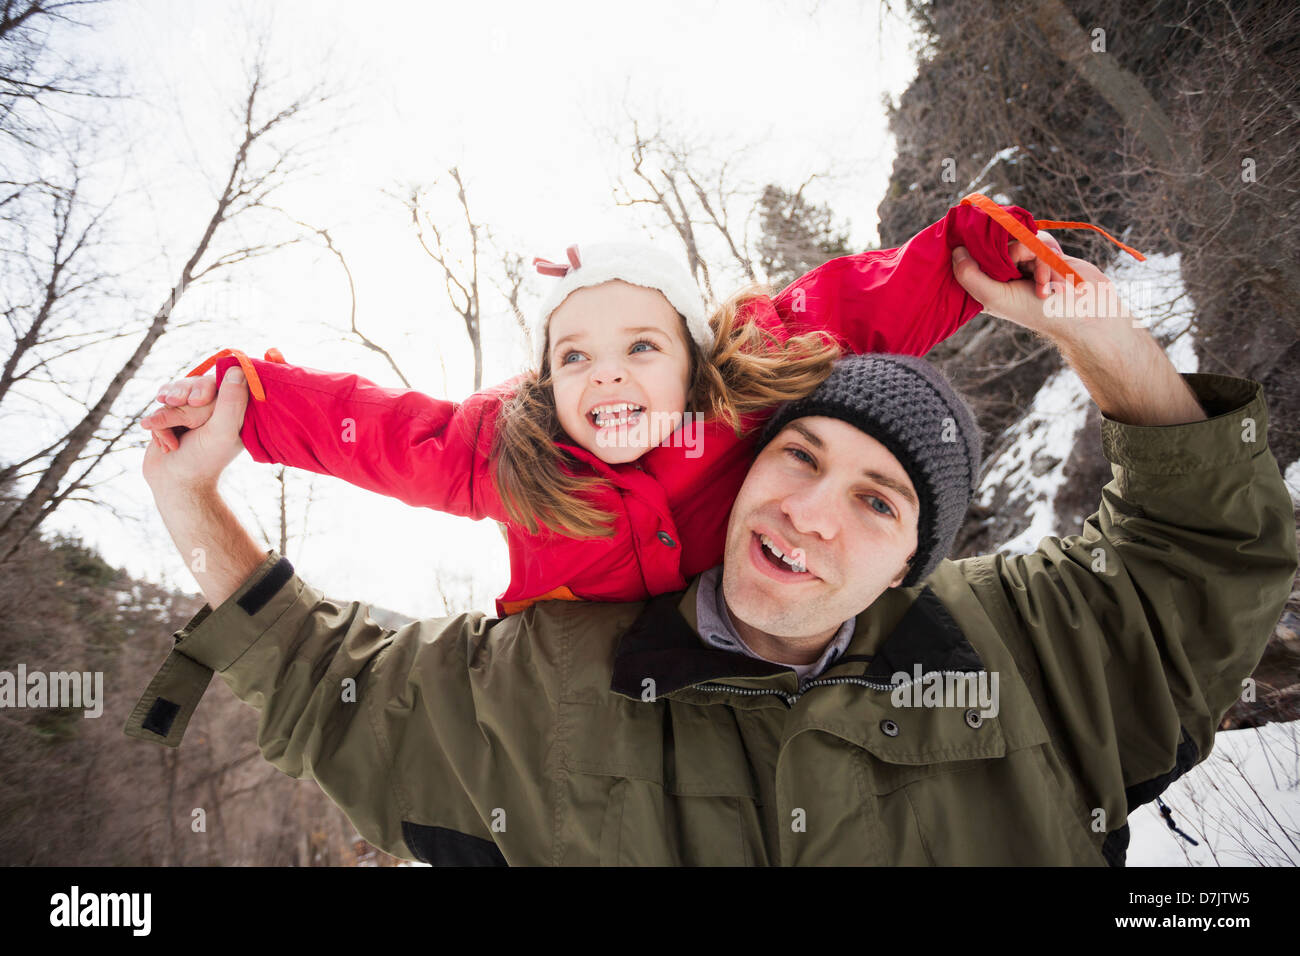 USA, Utah, Highland, Portrait of young man carrying girl (2-3) sur les épaules Photo Stock